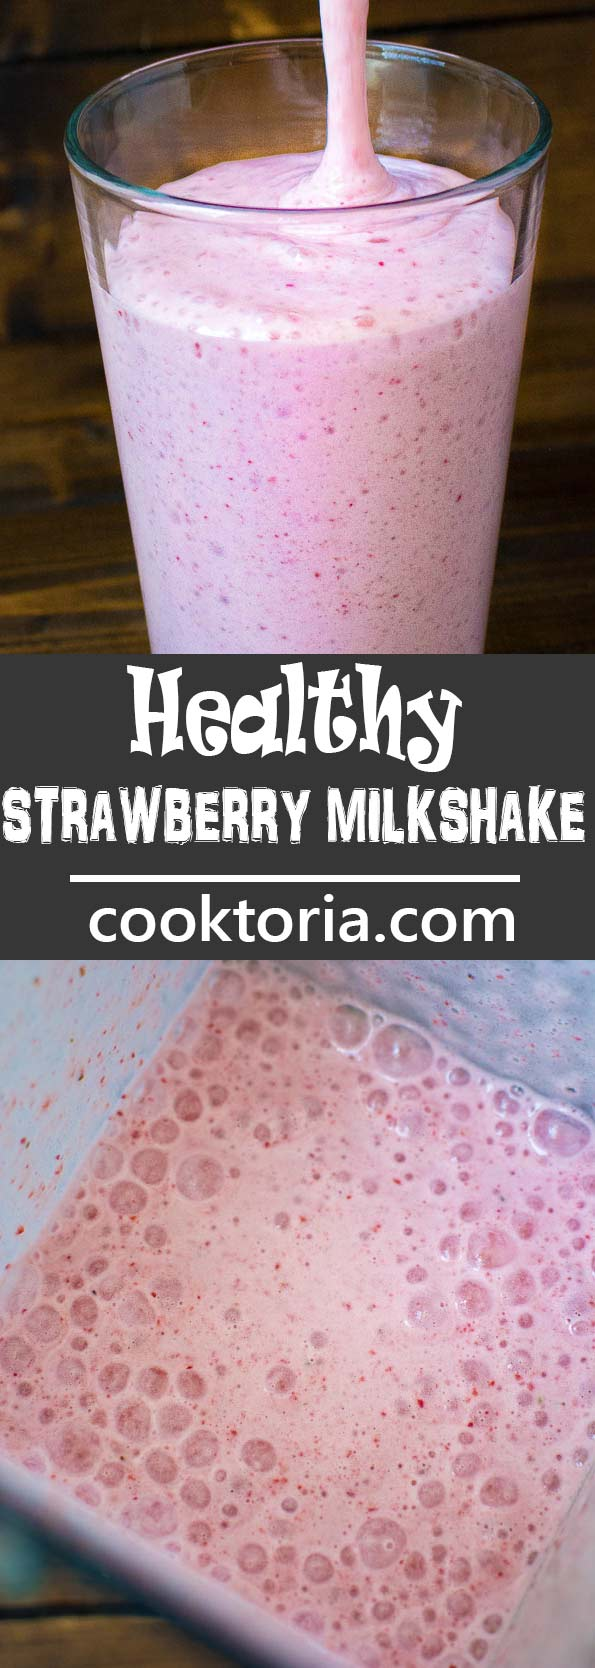 This Healthy Strawberry Milkshake is made with frozen bananas, fresh strawberries, and milk. You won't believe how simple and tasty this recipe is! ❤ COOKTORIA.COM